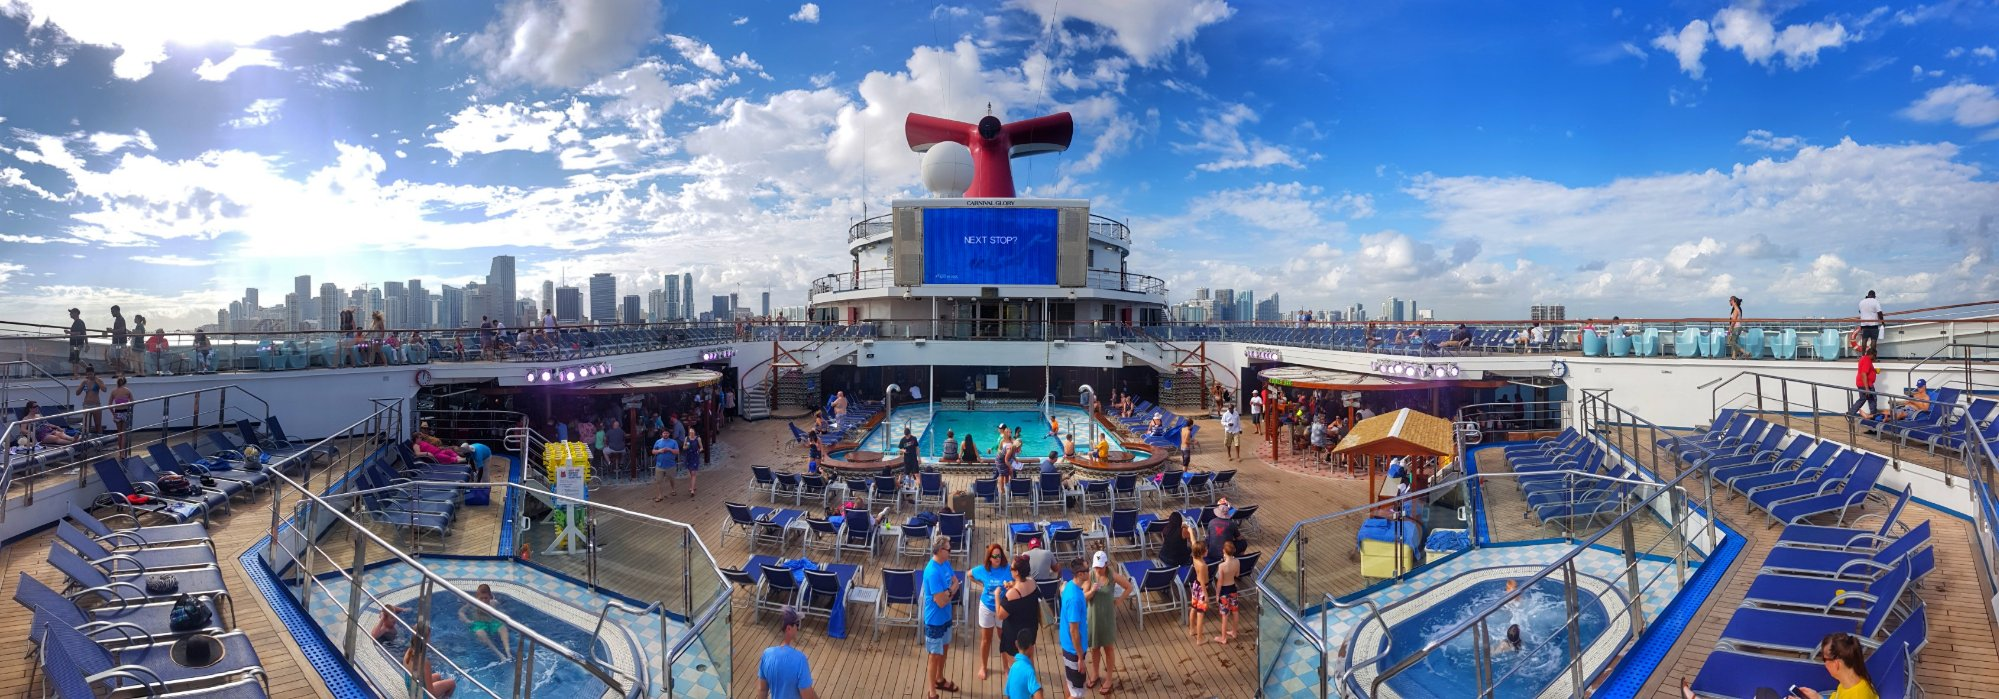 Carnival Glory Cruise Review: A Fun Cruise Designed for ...